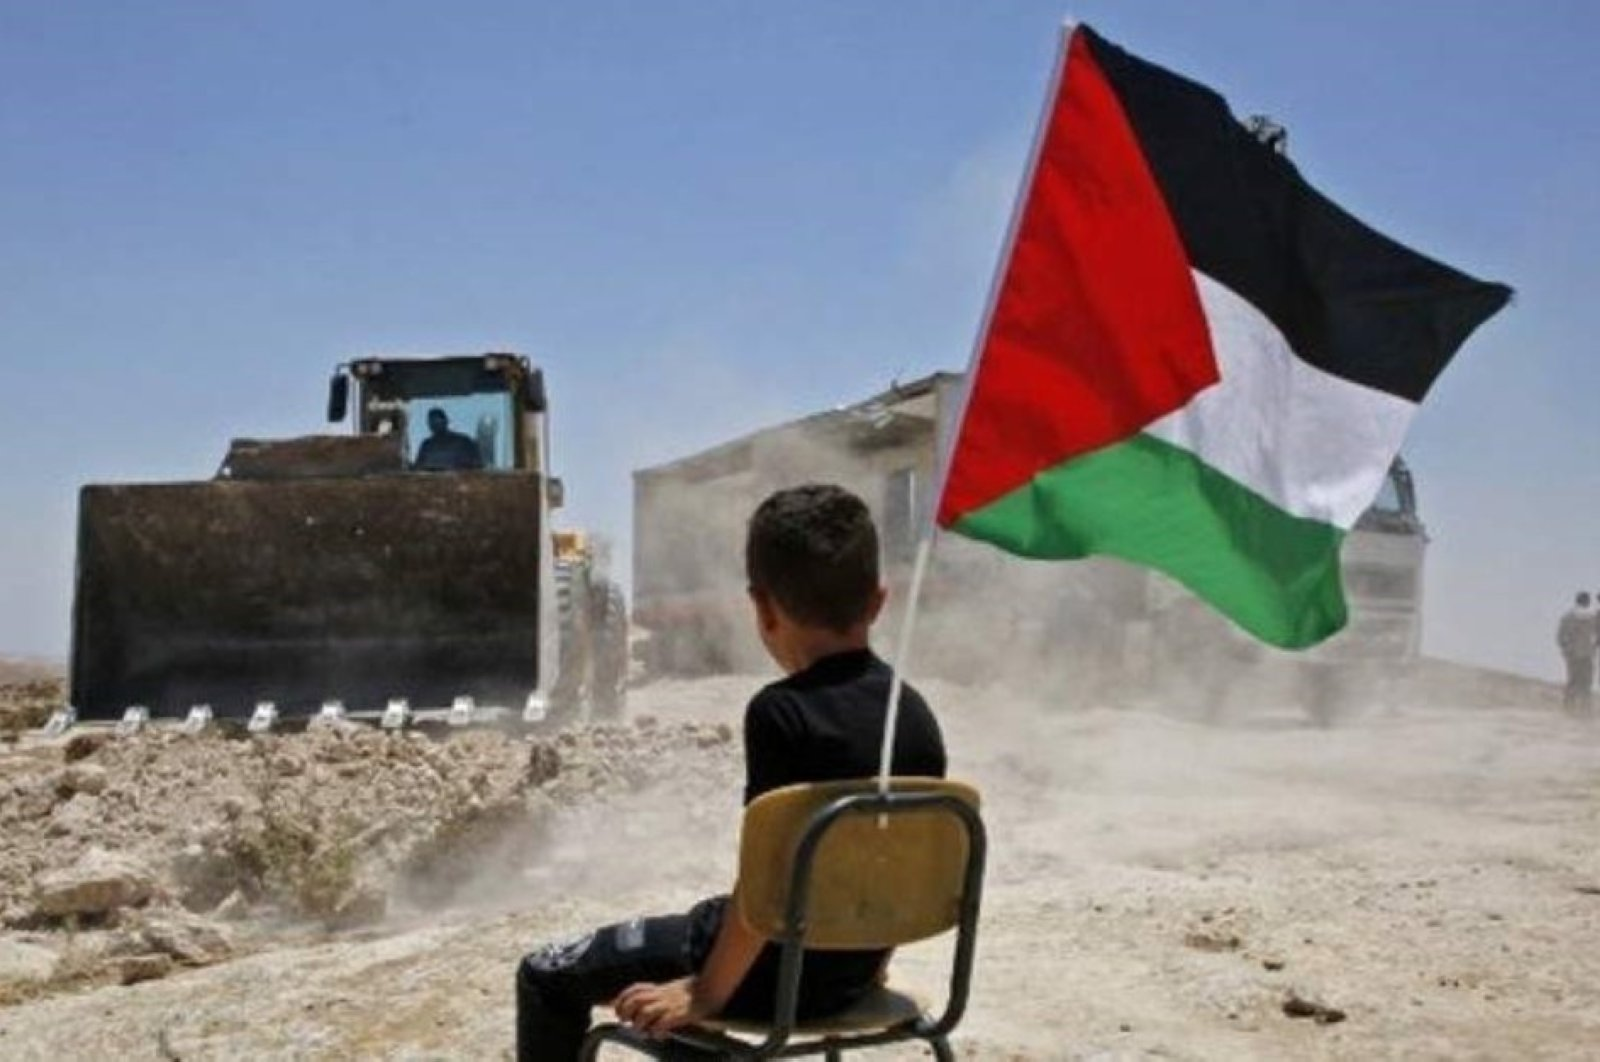 A Palestinian boy sits on a chair with a national flag as Israeli authorities demolish a school site in the village of Yatta, occupied West Bank, July 11, 2018. (AFP Photo)